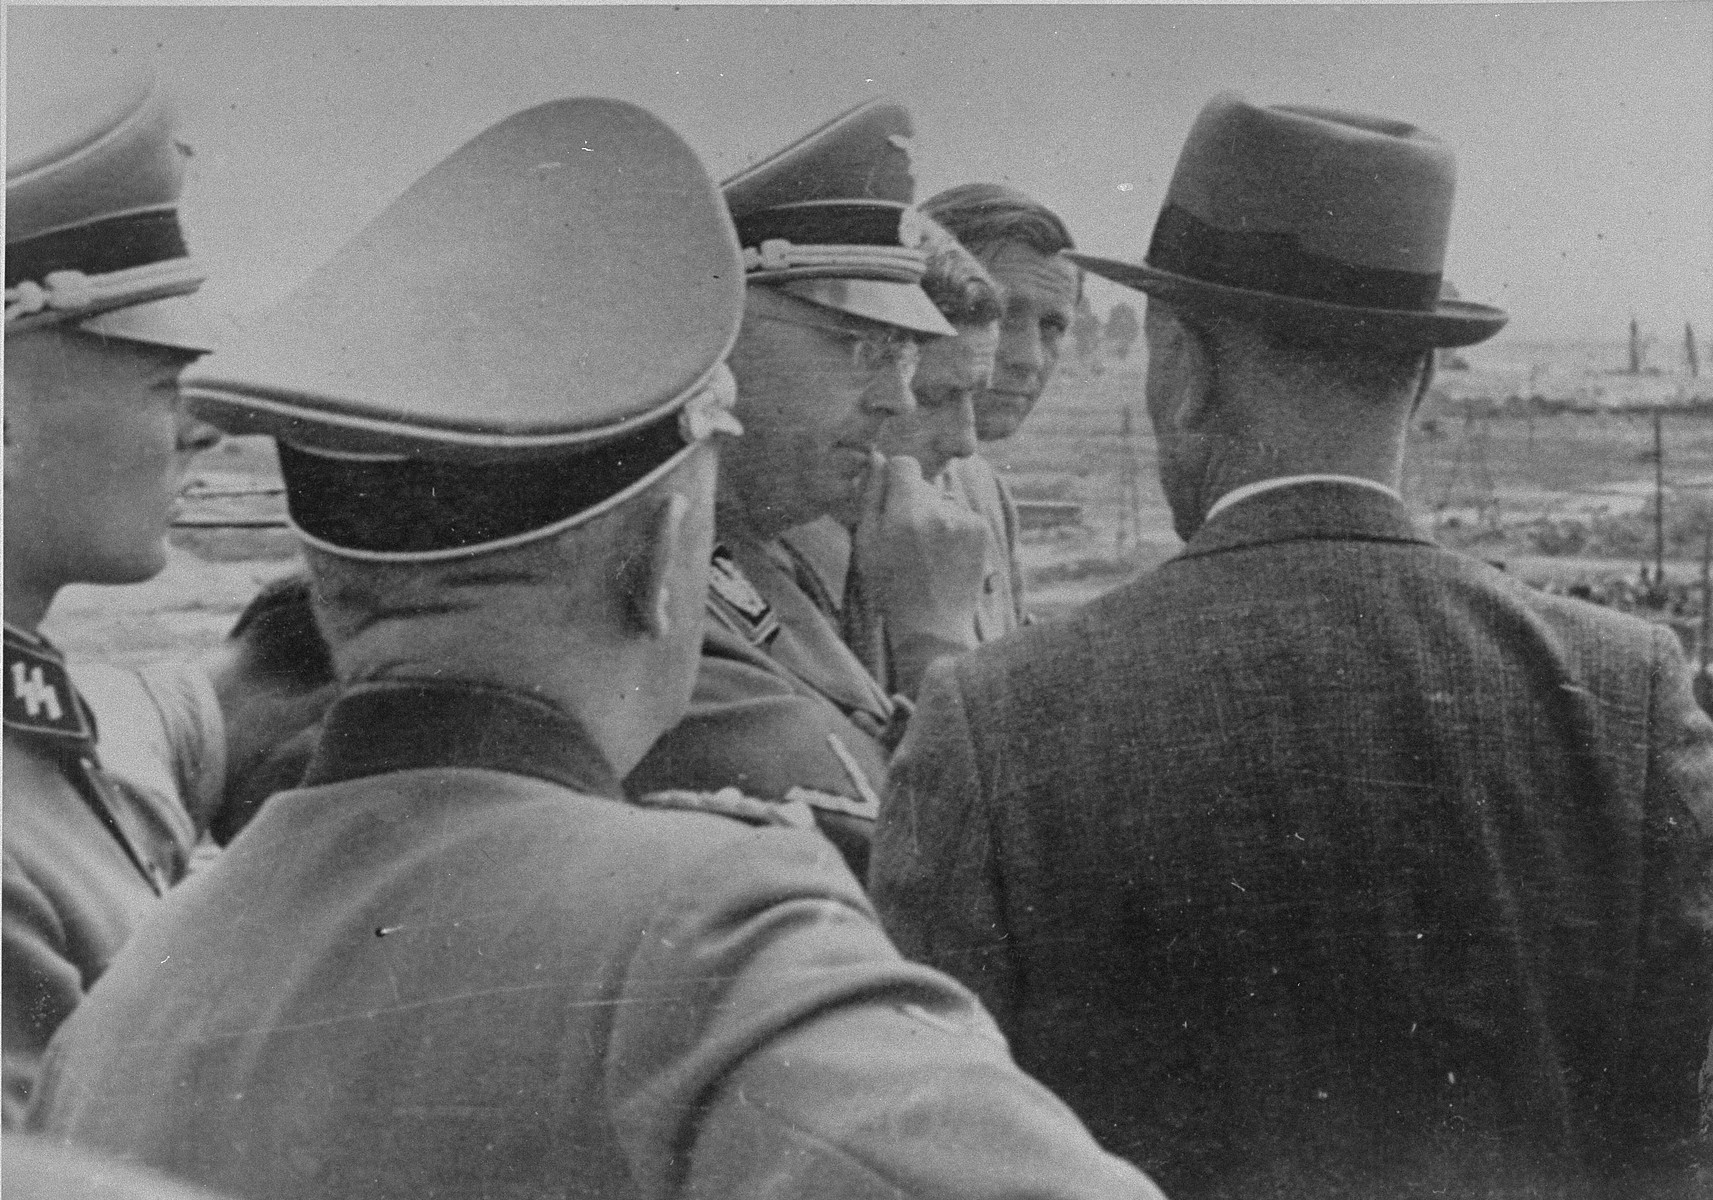 Reichsfuehrer SS Heinrich Himmler converses with Max Faust (wearing the fedora) during a tour of the Monowitz-Buna building site. The SS officer to the left is Werner Grothmann.    Faust, who was an IG Farben engineer, was the head of building operations at Monowitz-Buna.